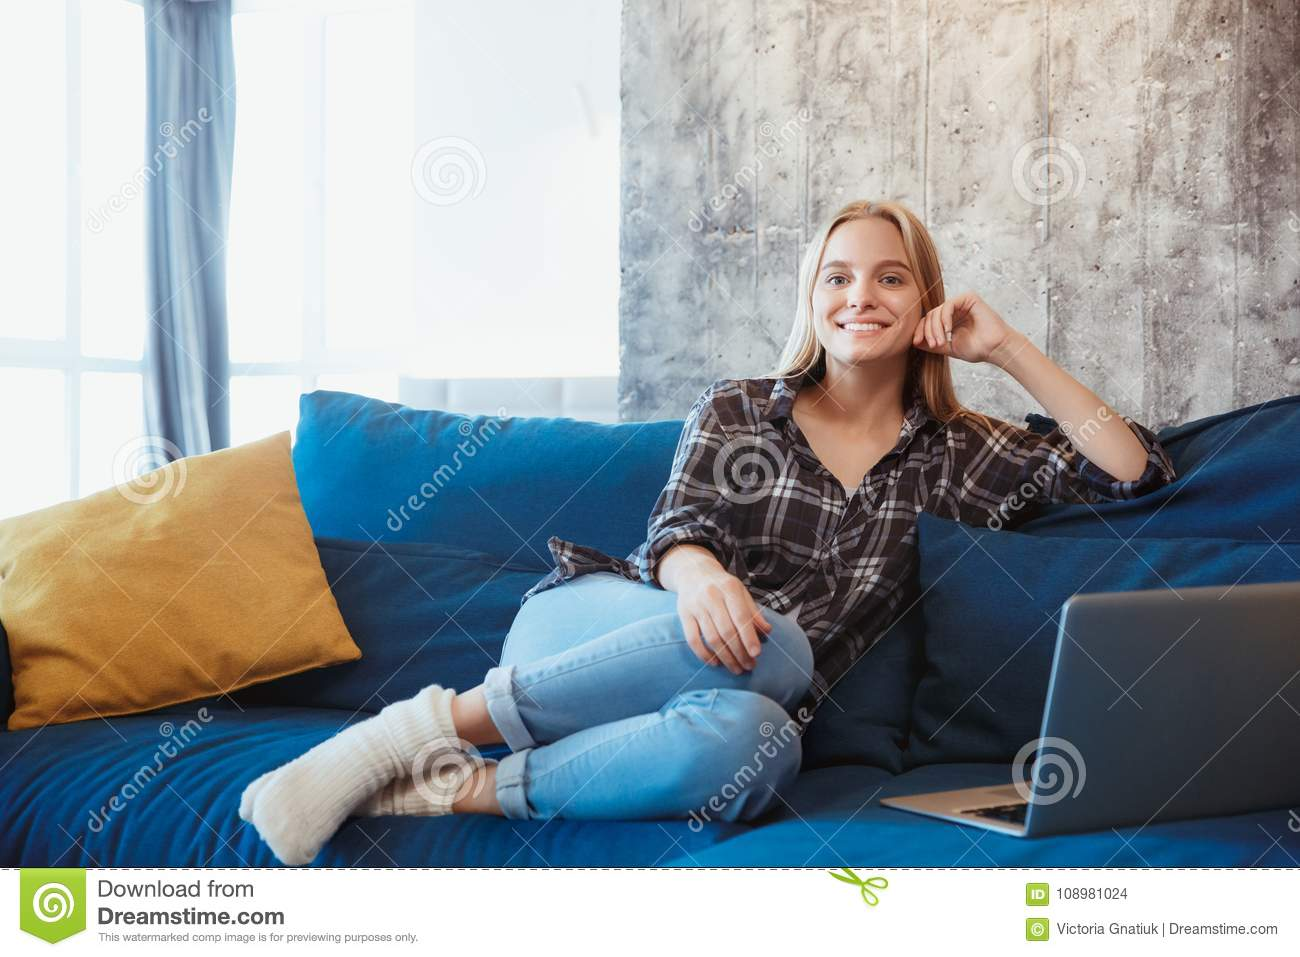 Young woman at home in the living room resting on coach